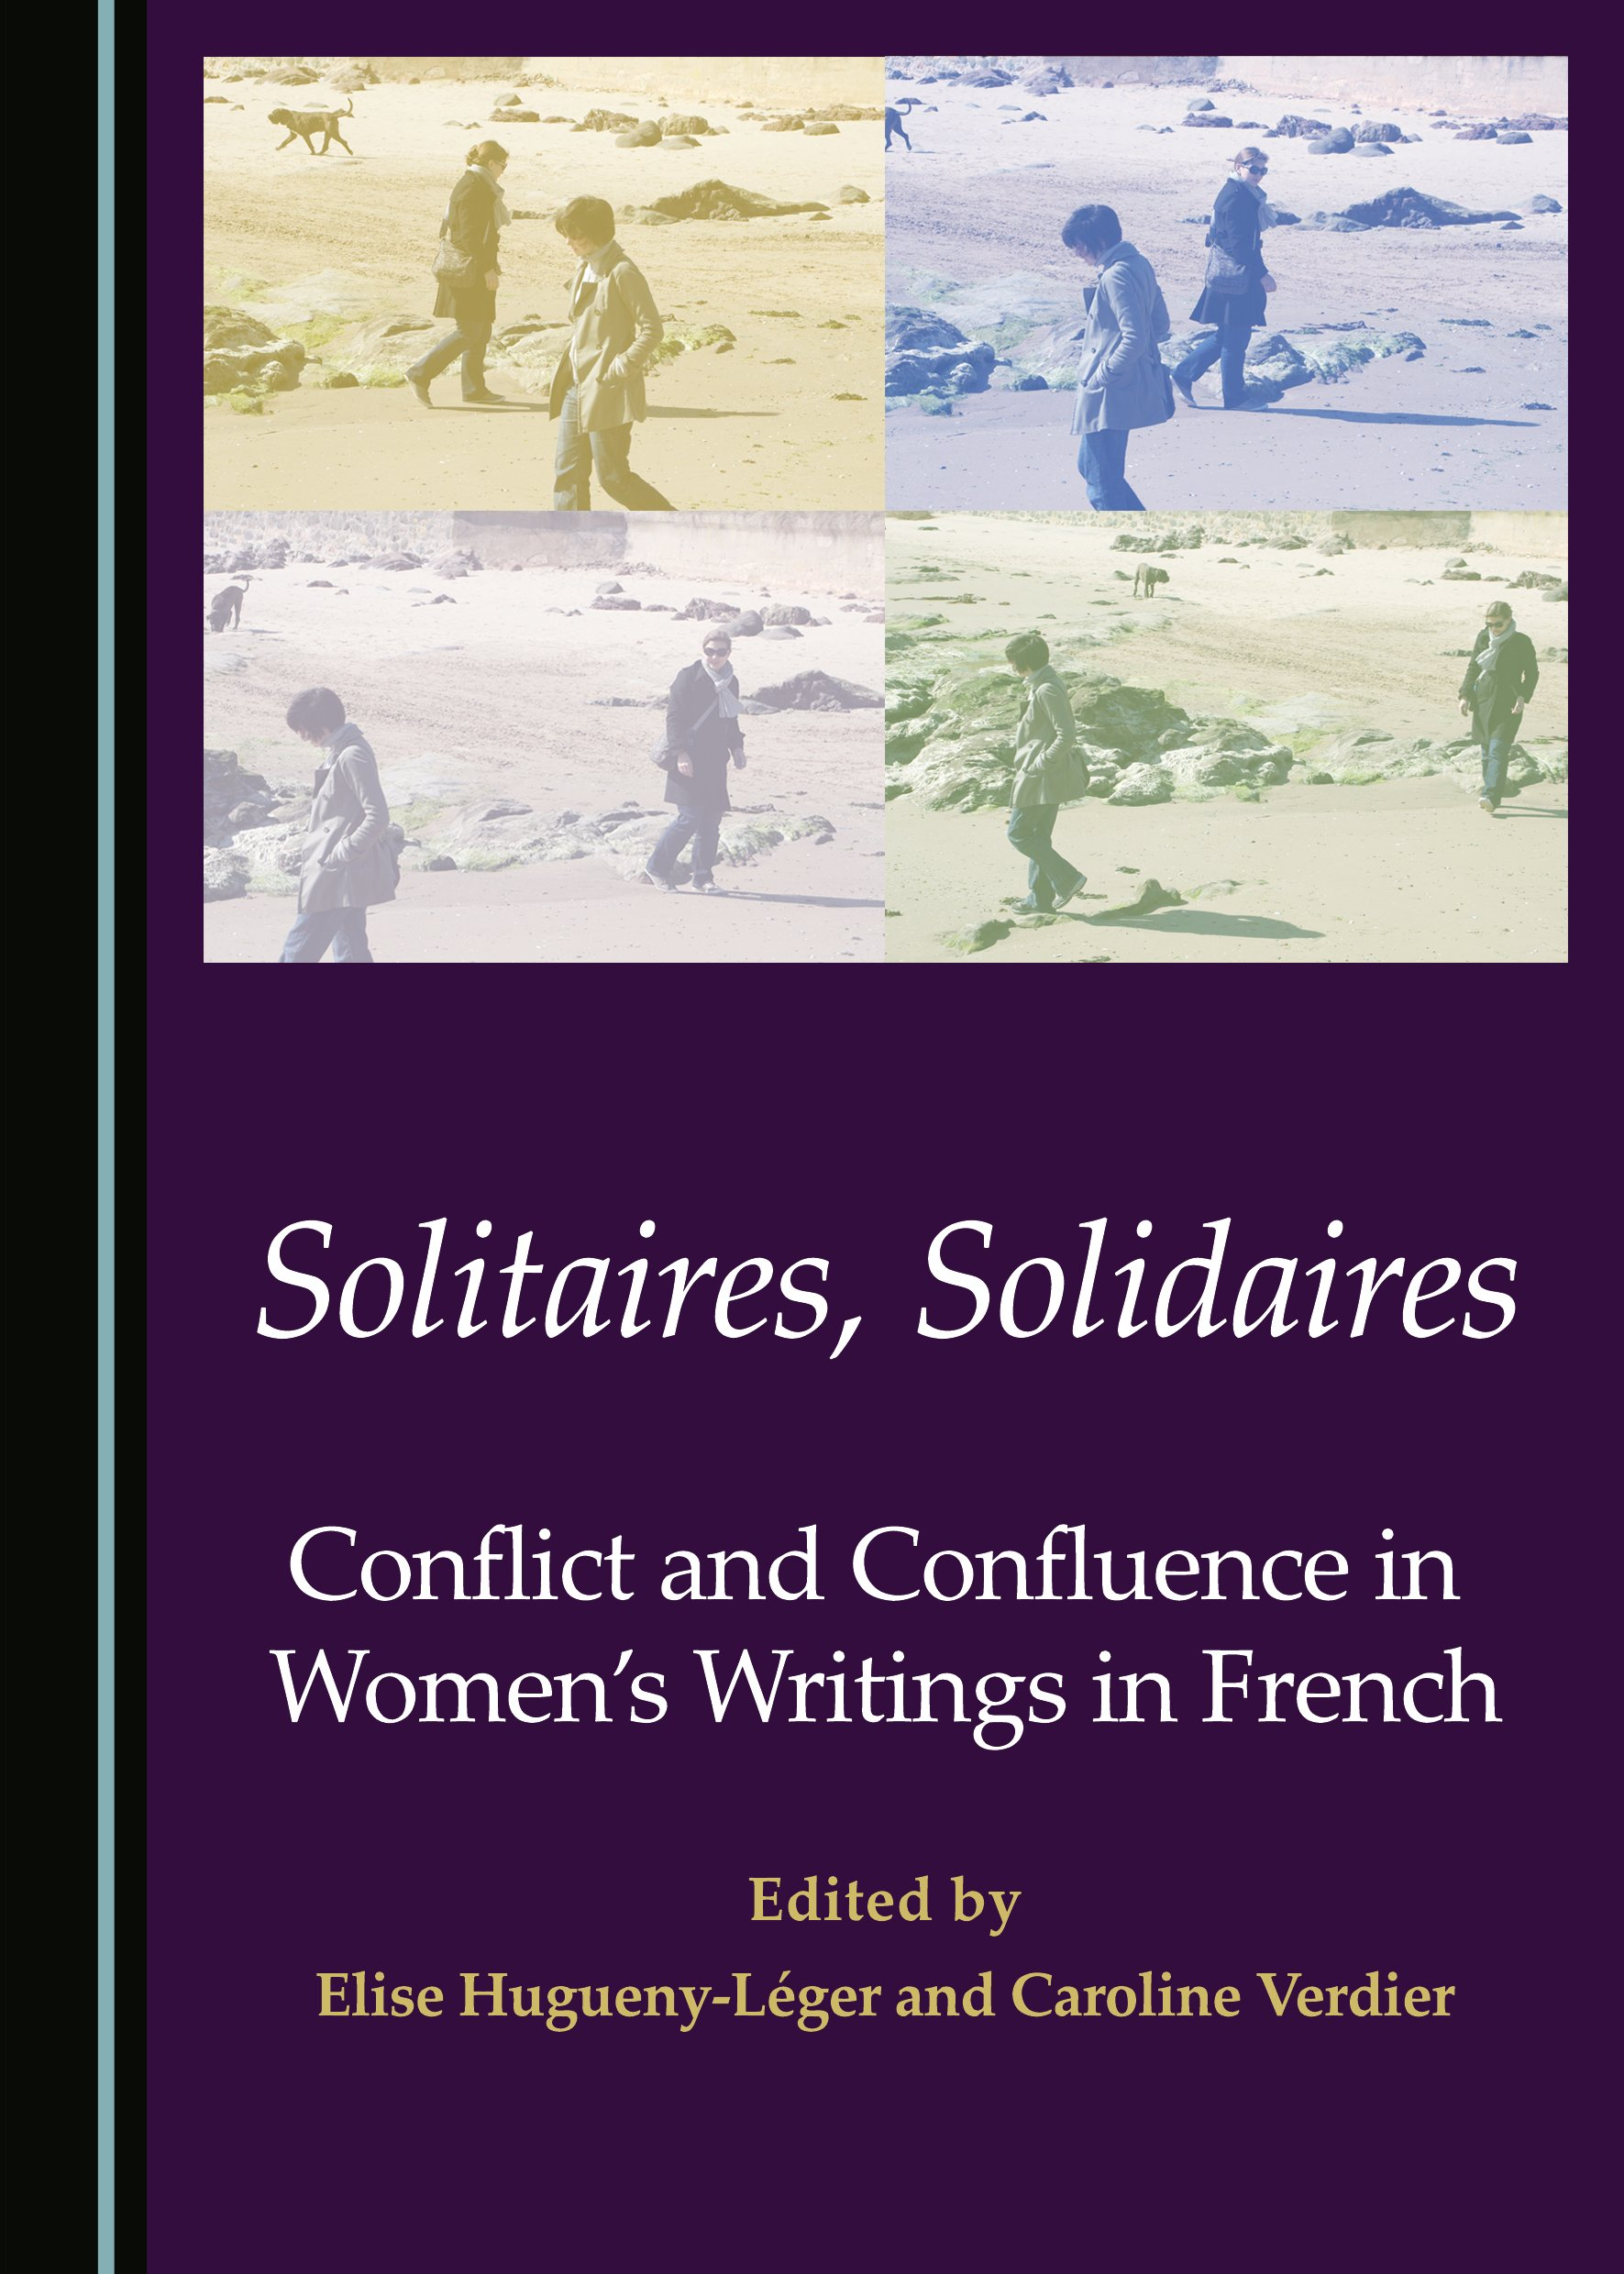 Solitaires, Solidaires: Conflict and Confluence in Women's Writings in French